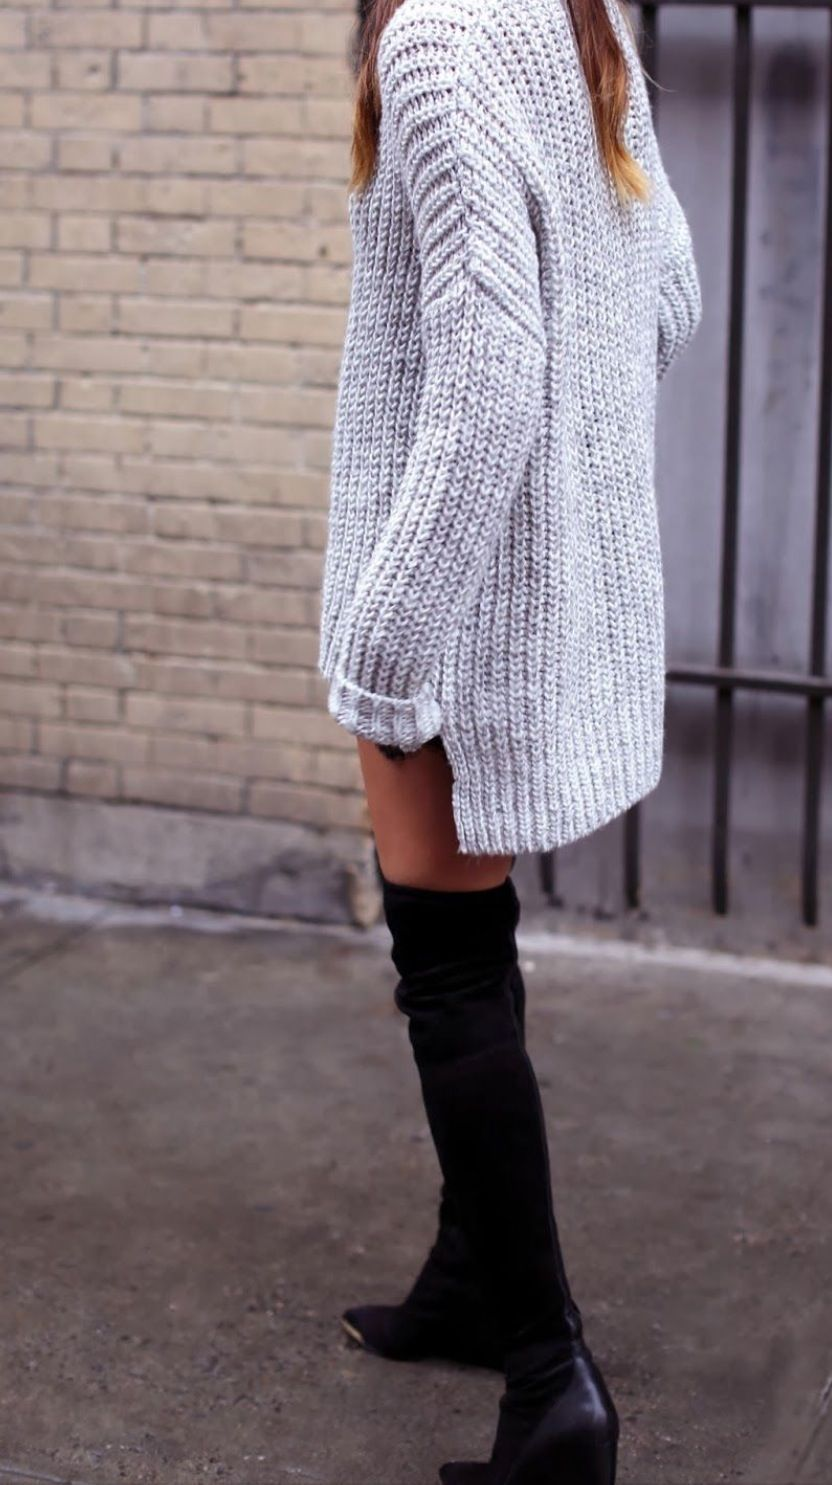 c67259a353ea ribbed knit & over-the-knee boots | Street Style Snaps | Fashion ...